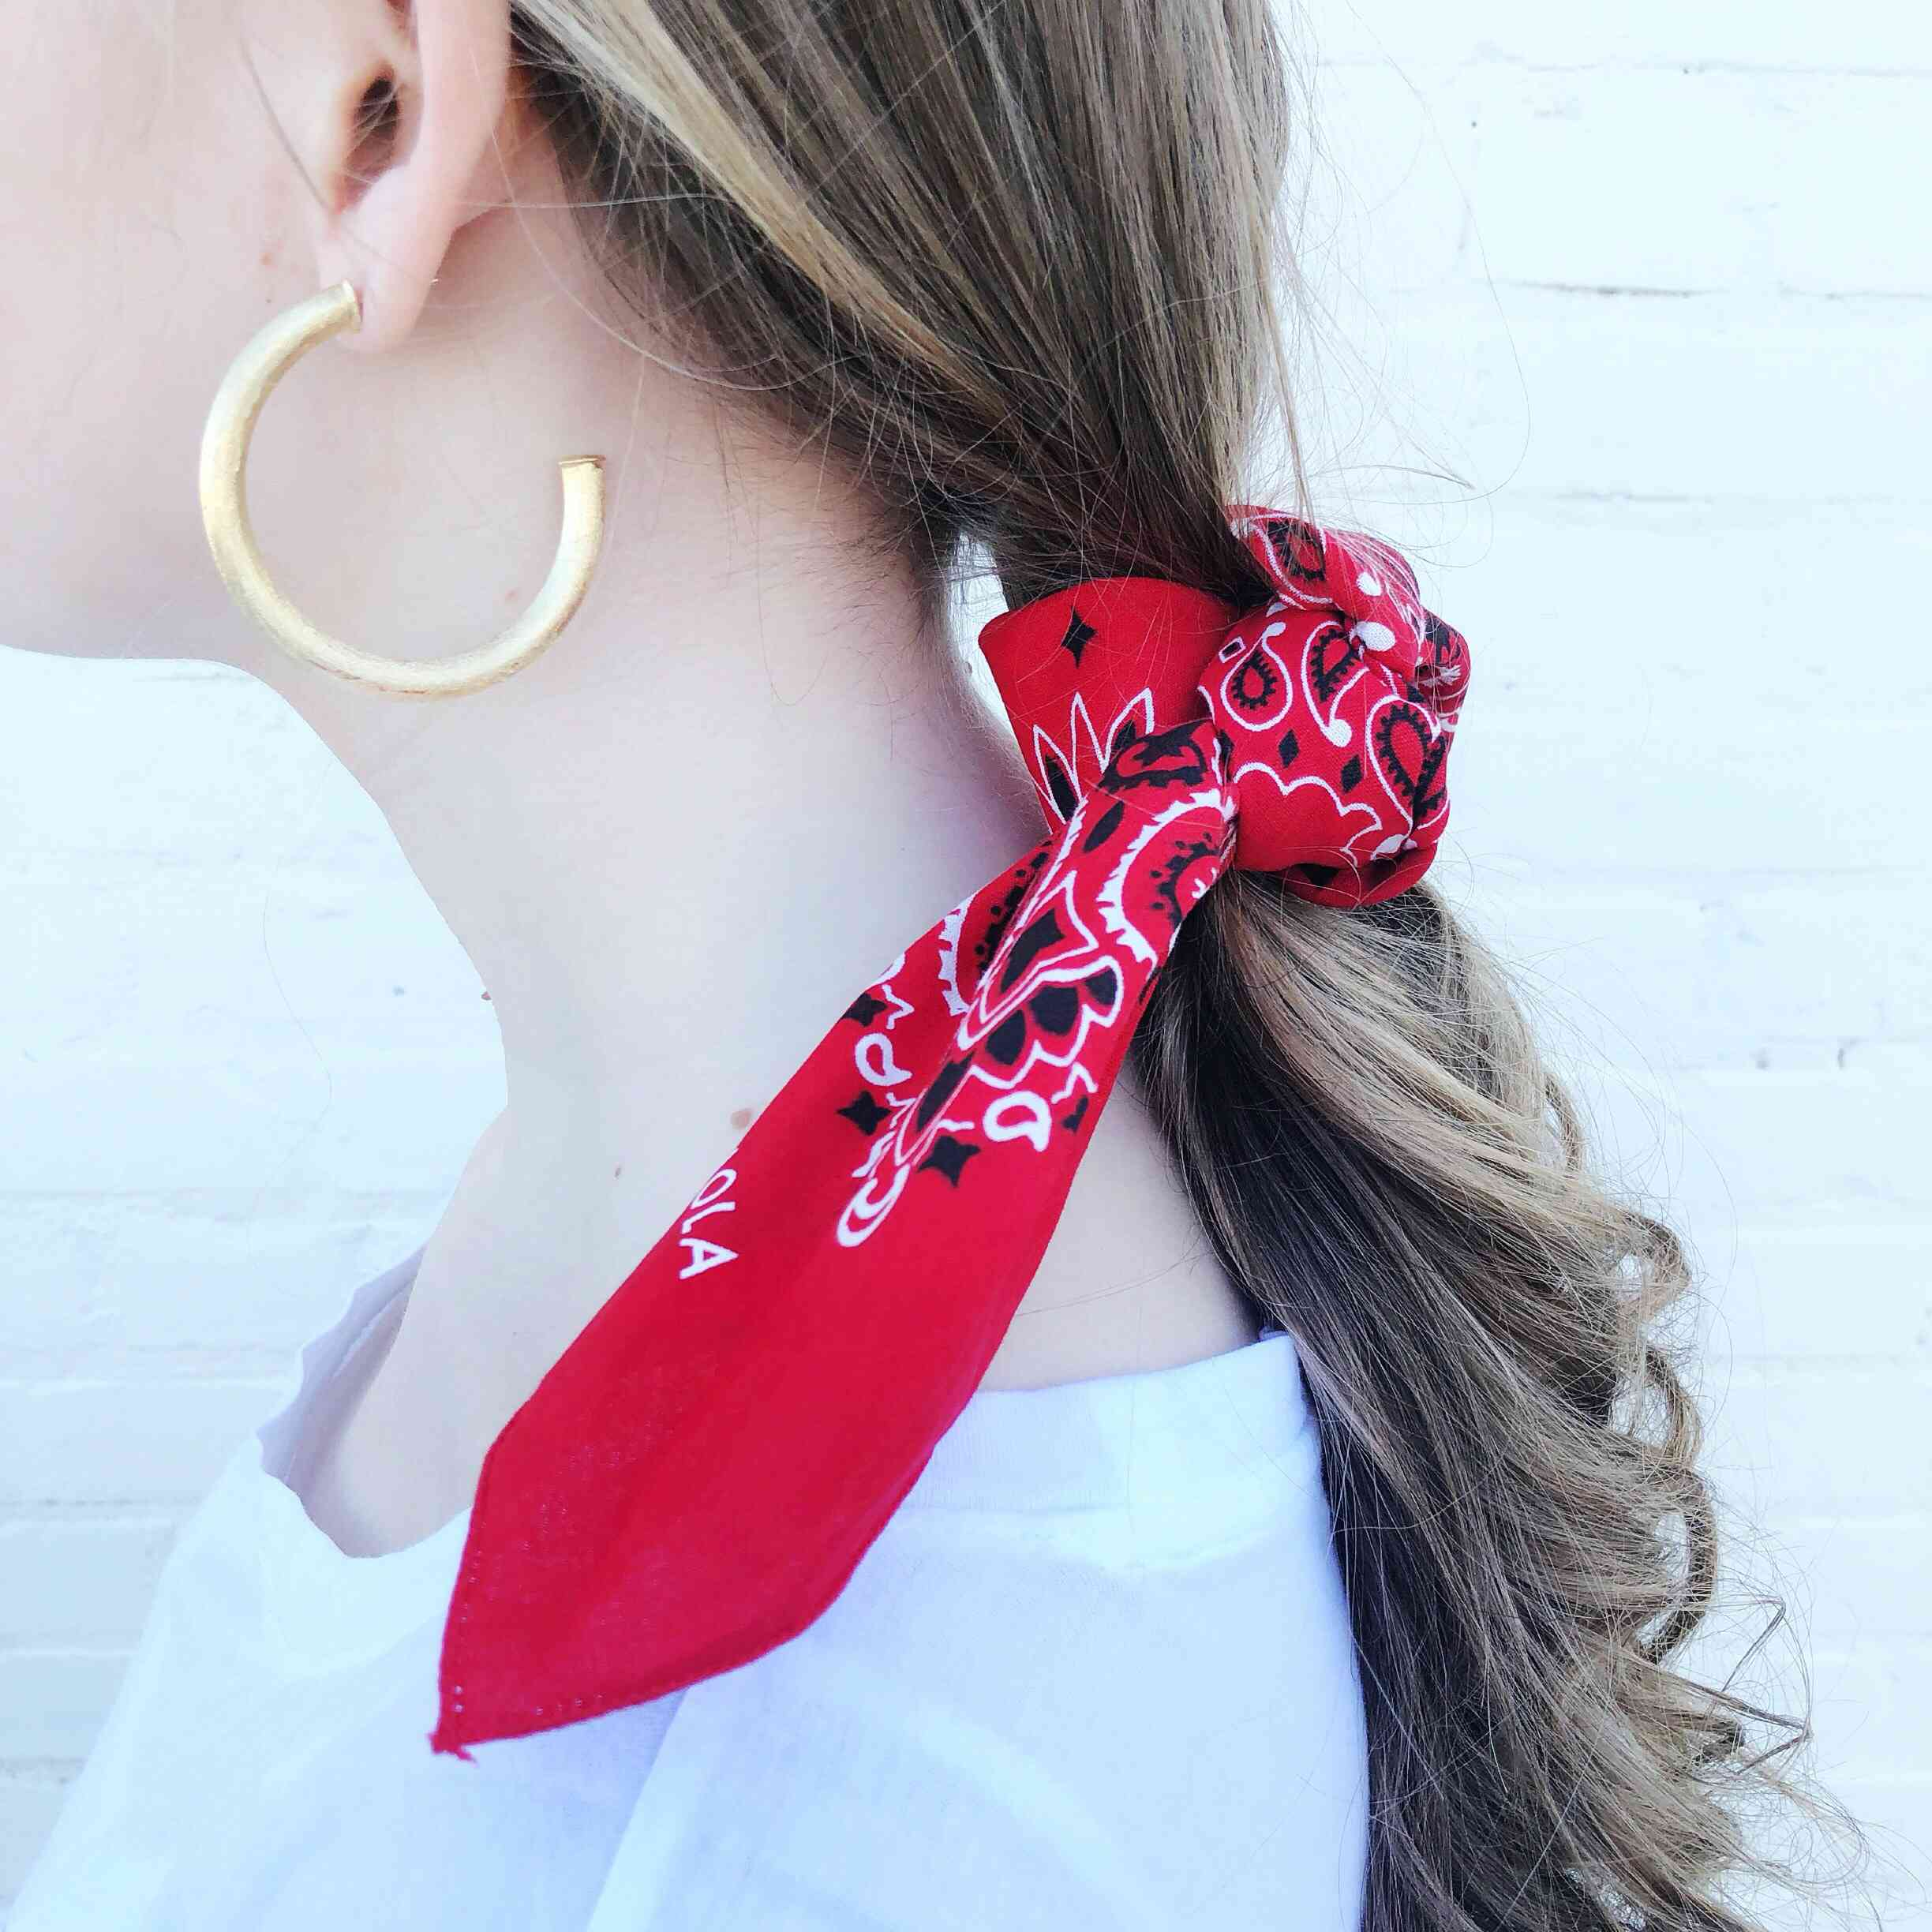 Moon and Lola - Traditional Bandana in Red tied to ponytail